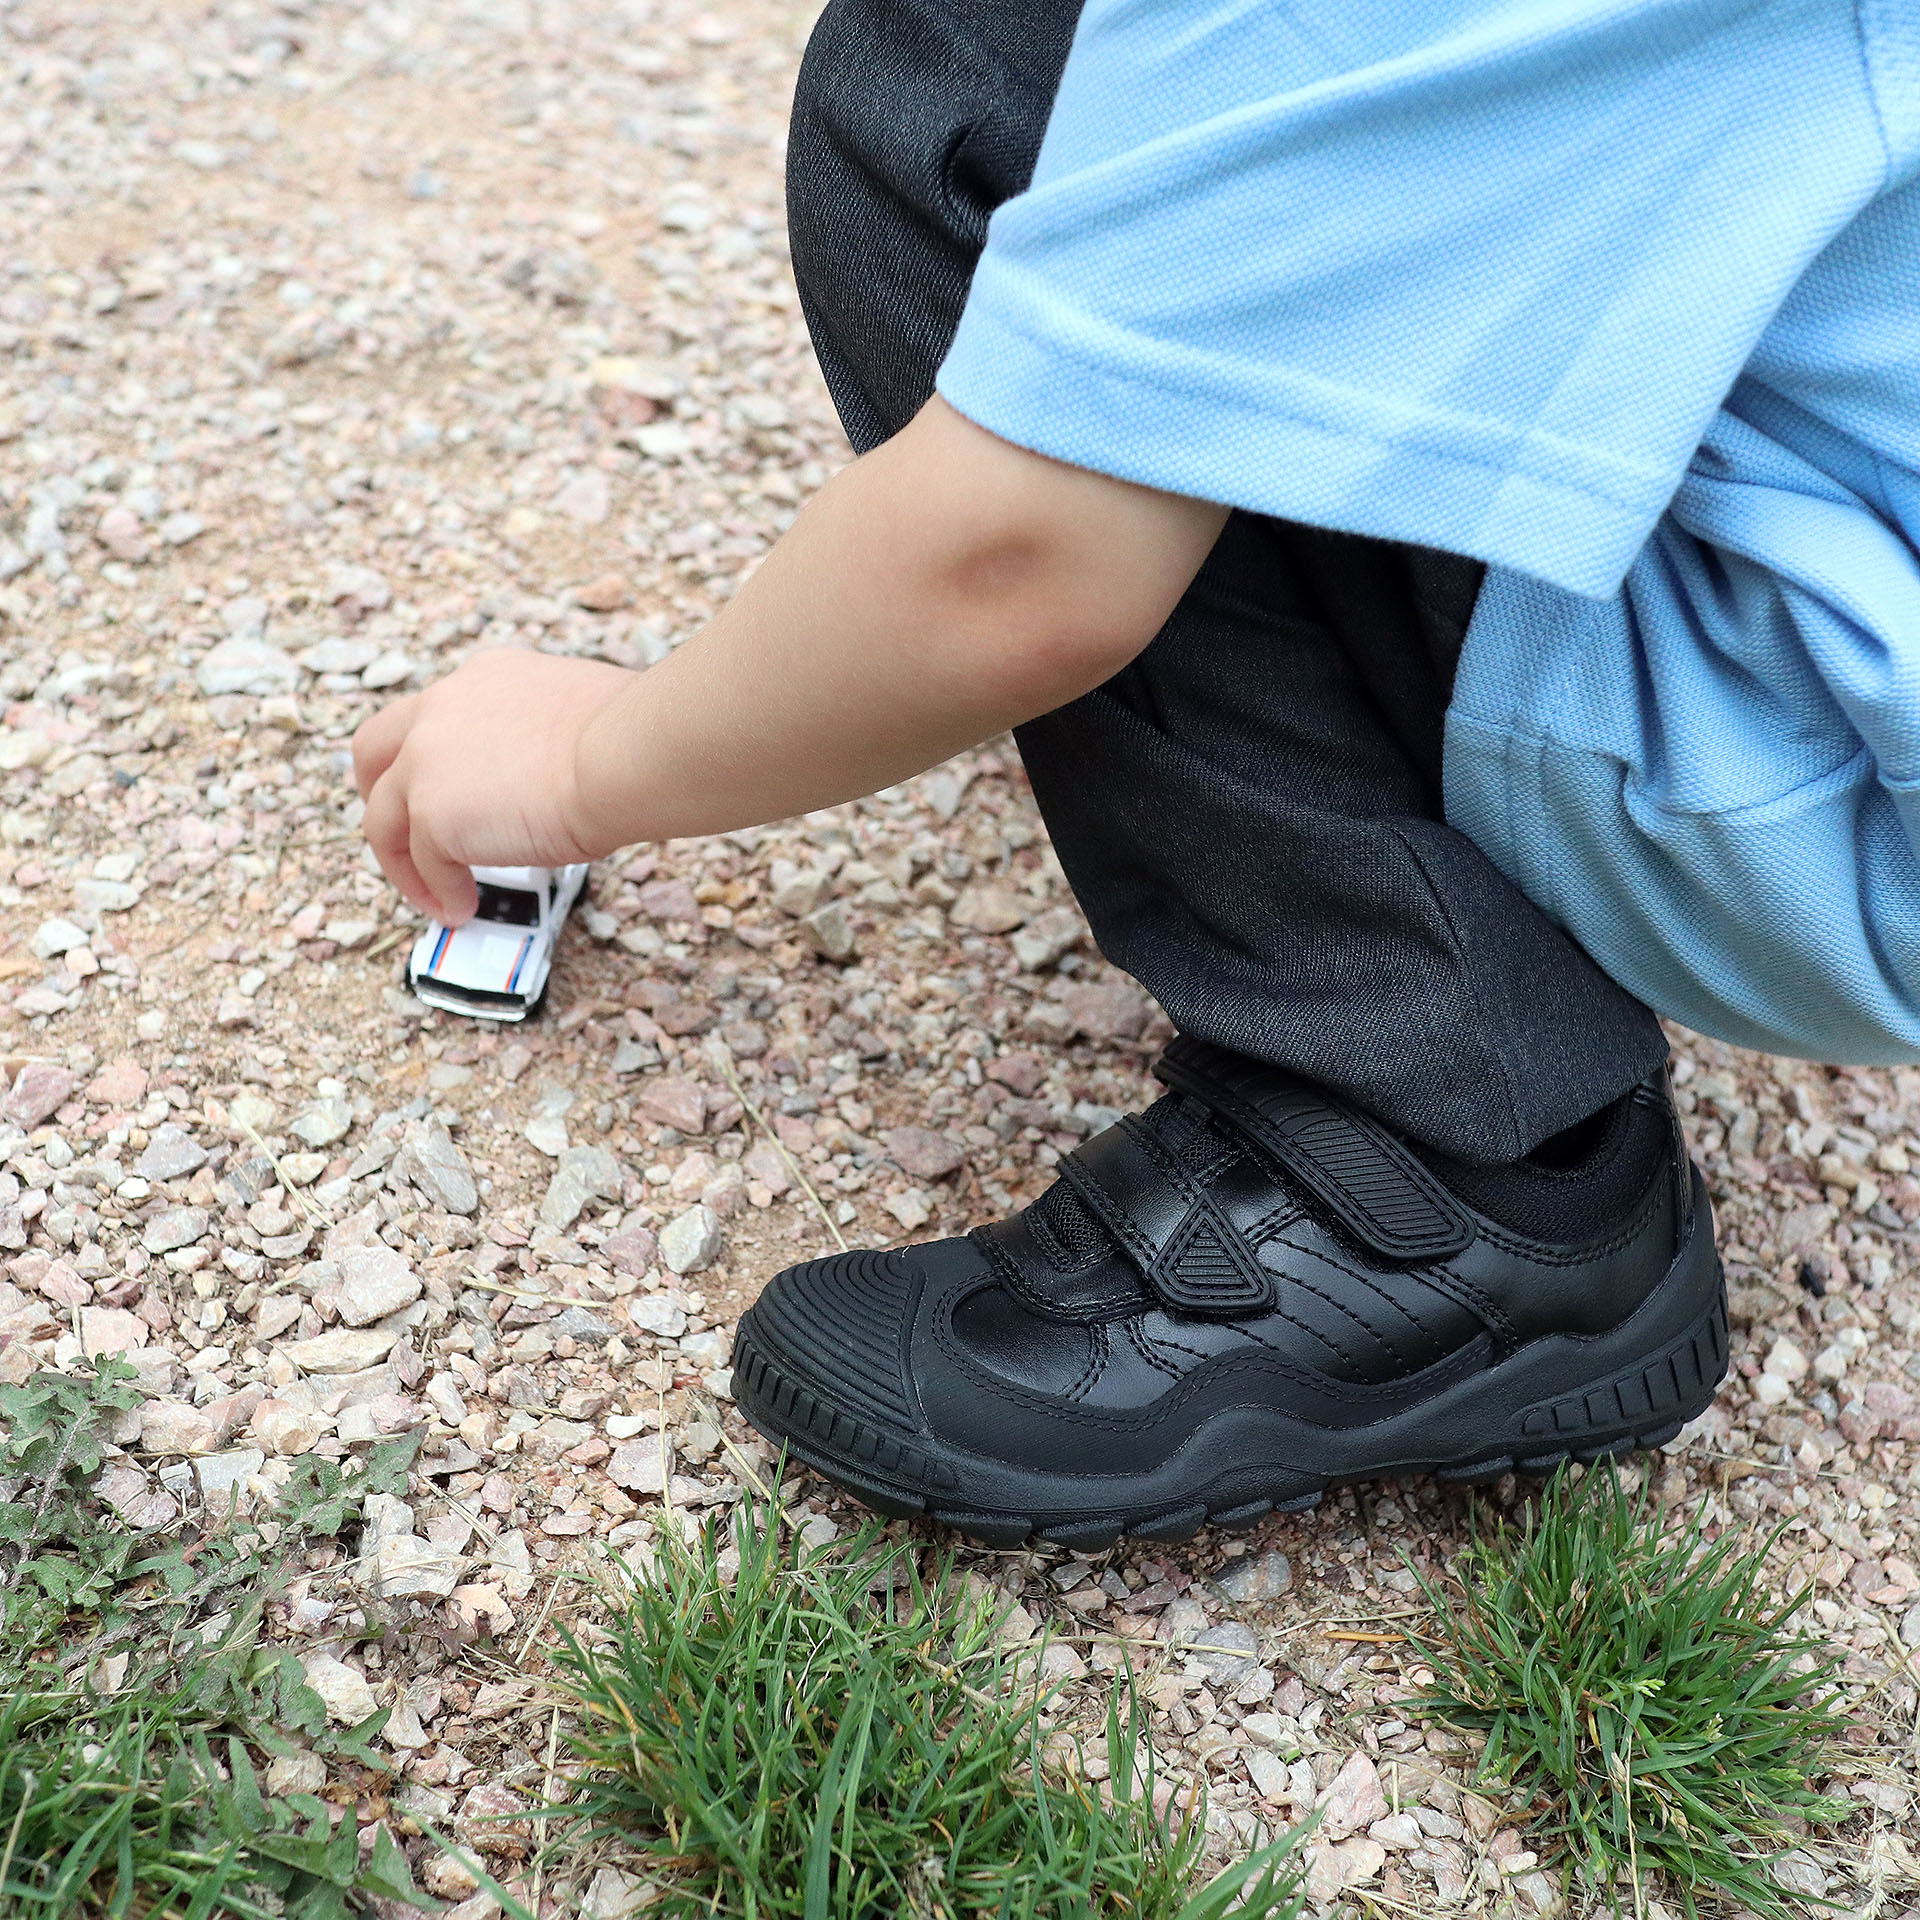 Child playing outdoors in school uniform wearing Start-Rite Extreme school shoes